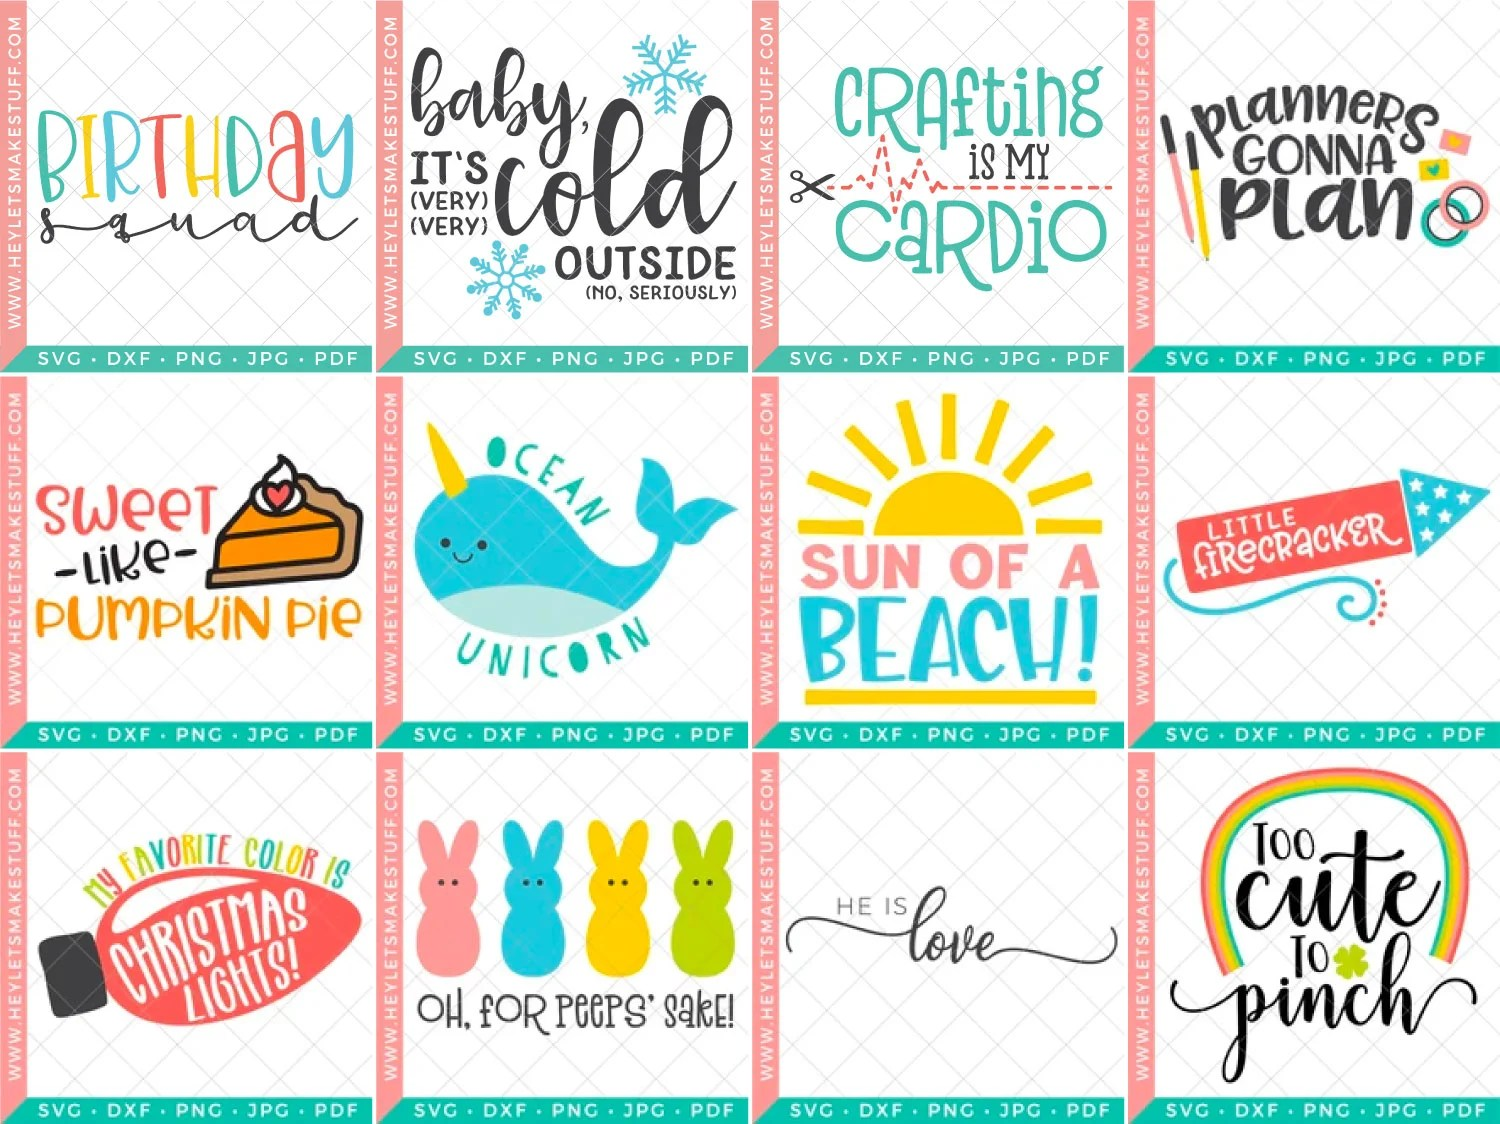 12 free cut files available on Hey, Let's Make Stuff